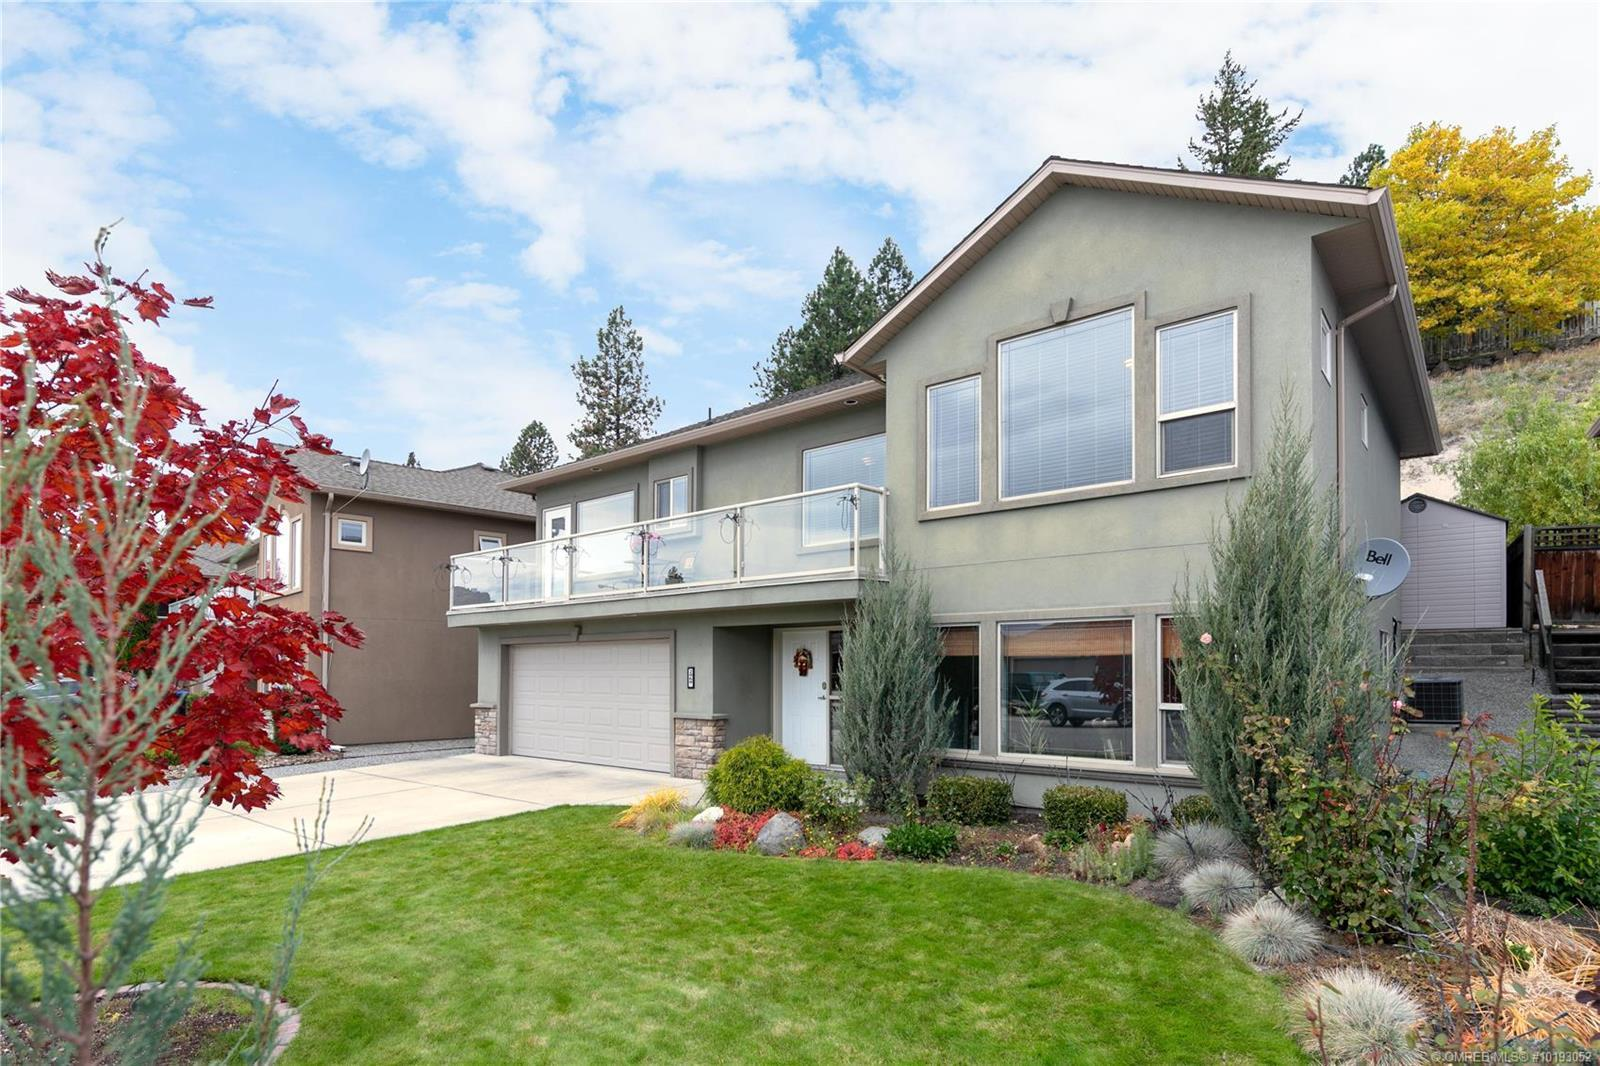 Removed: 2060 Spyglass Way, West Kelowna, BC - Removed on 2020-02-14 05:03:02